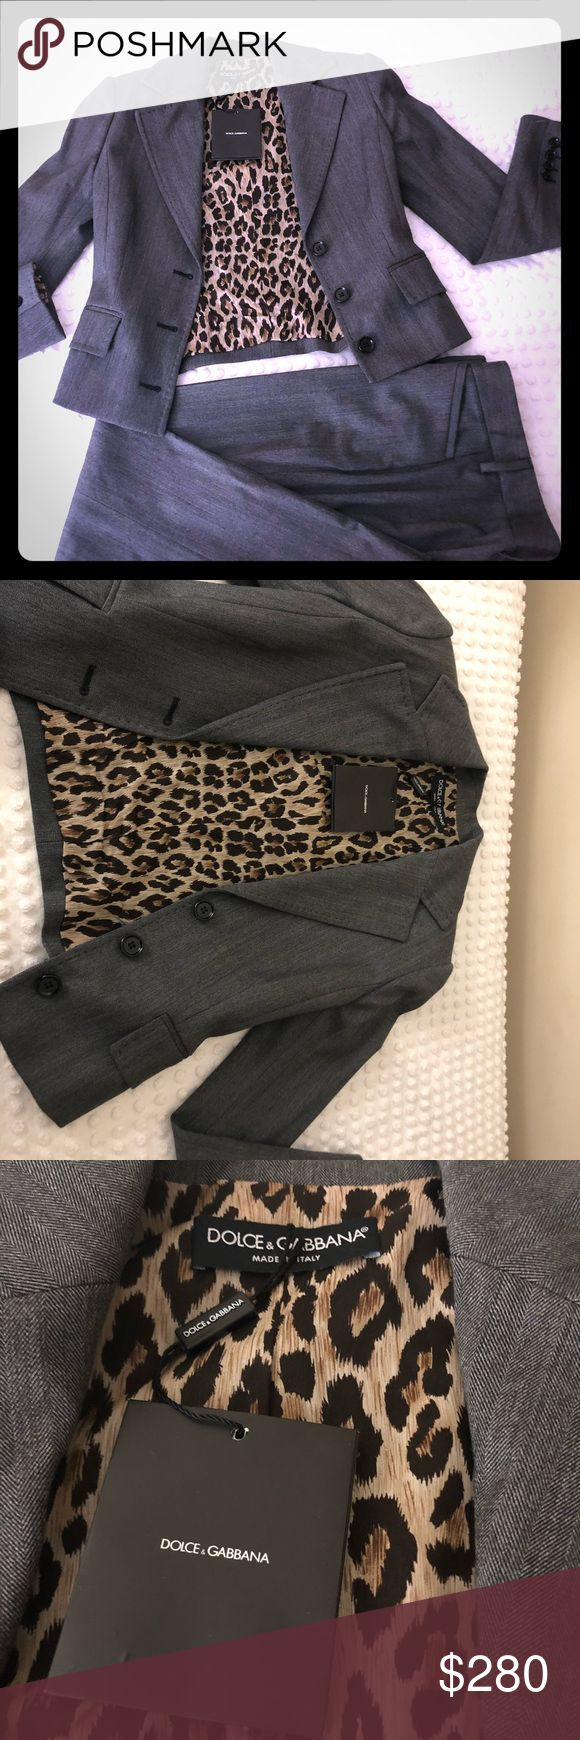 Dolce gabana suit Dolce gabana 3 pieces suit blazer, pants and skirt . Perfect conditions. Gray color size 38 Dolce & Gabbana Jackets & Coats Blazers